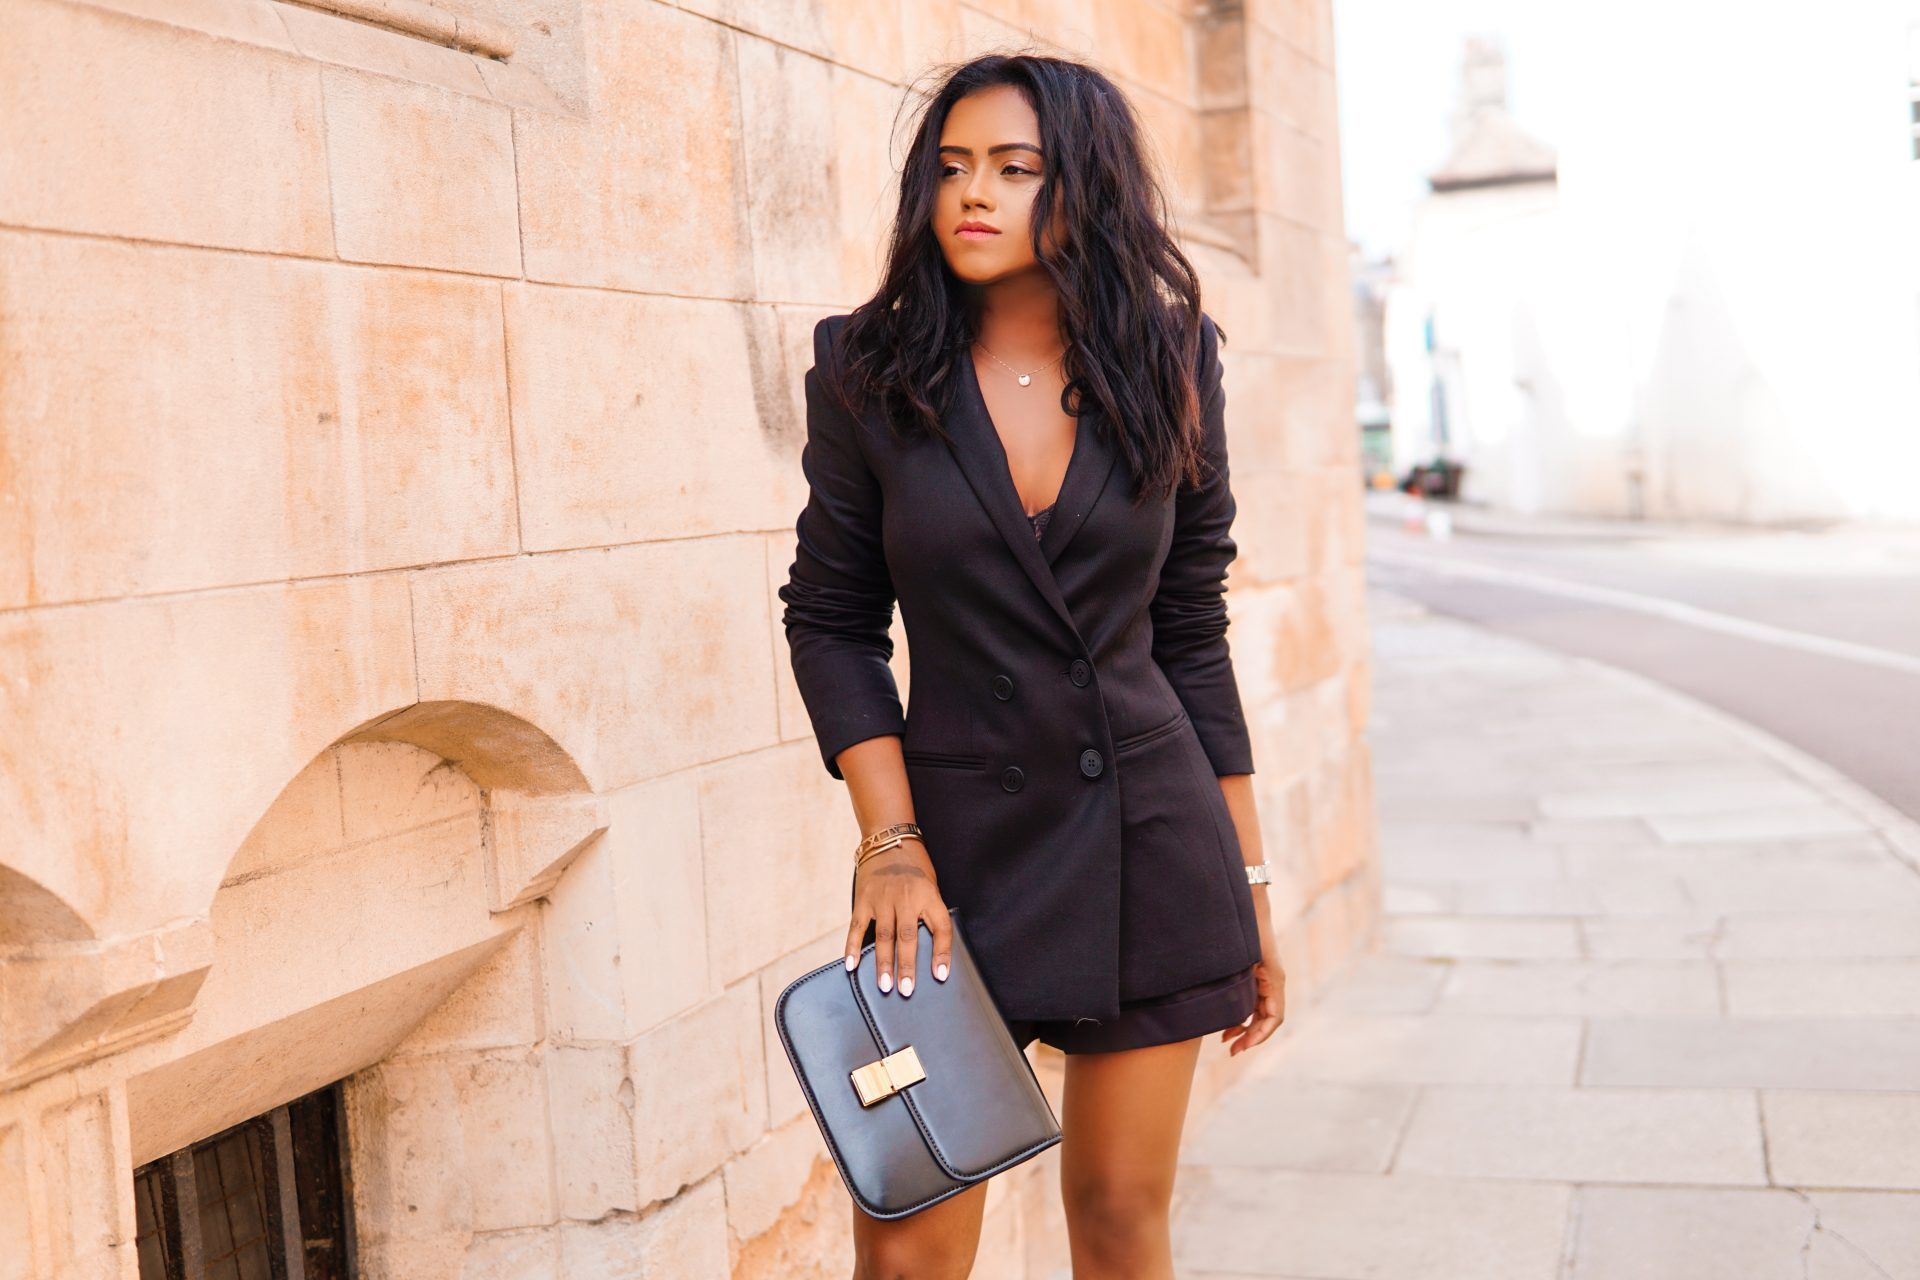 Sachini wearing a black Saint and Sofia blazer with black shorts and black handbag, standing in front of a building